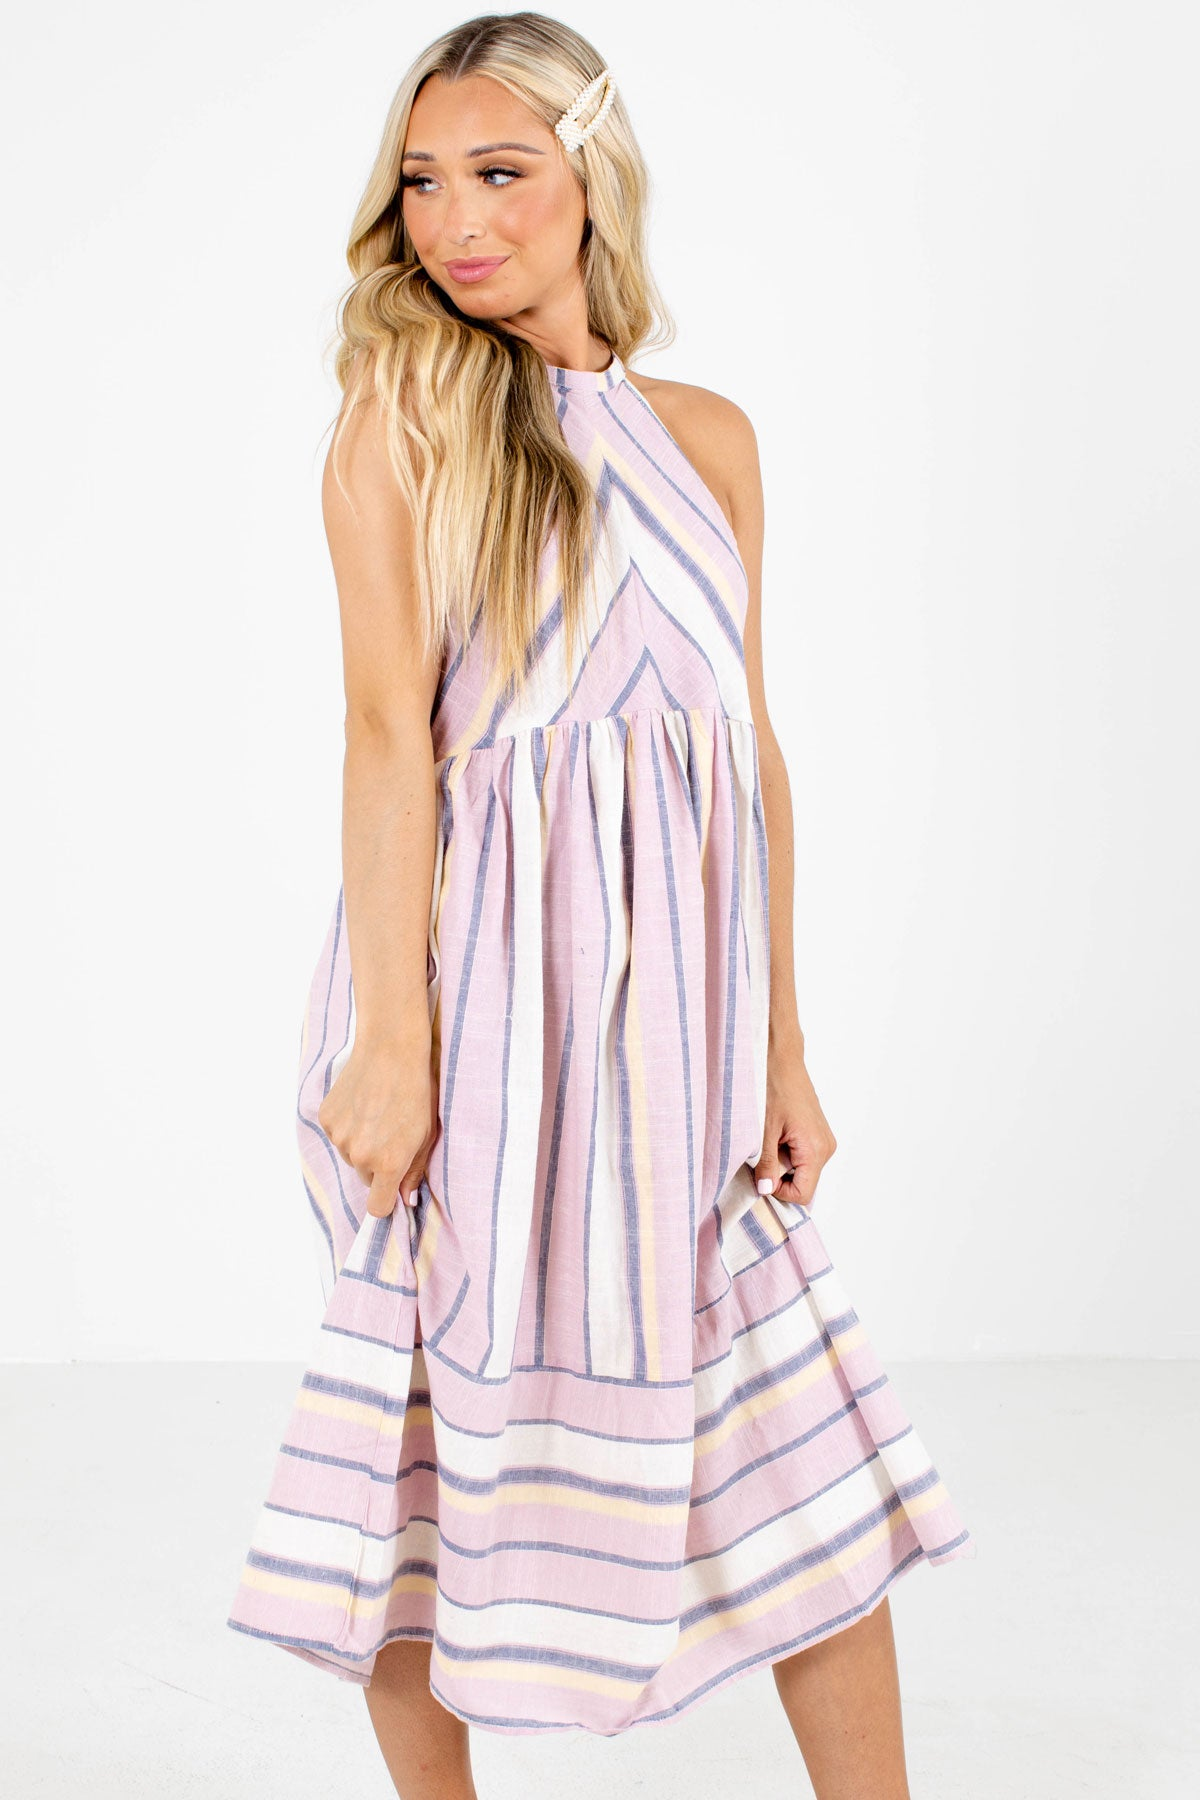 Pink Striped Boutique Midi Dresses for Women